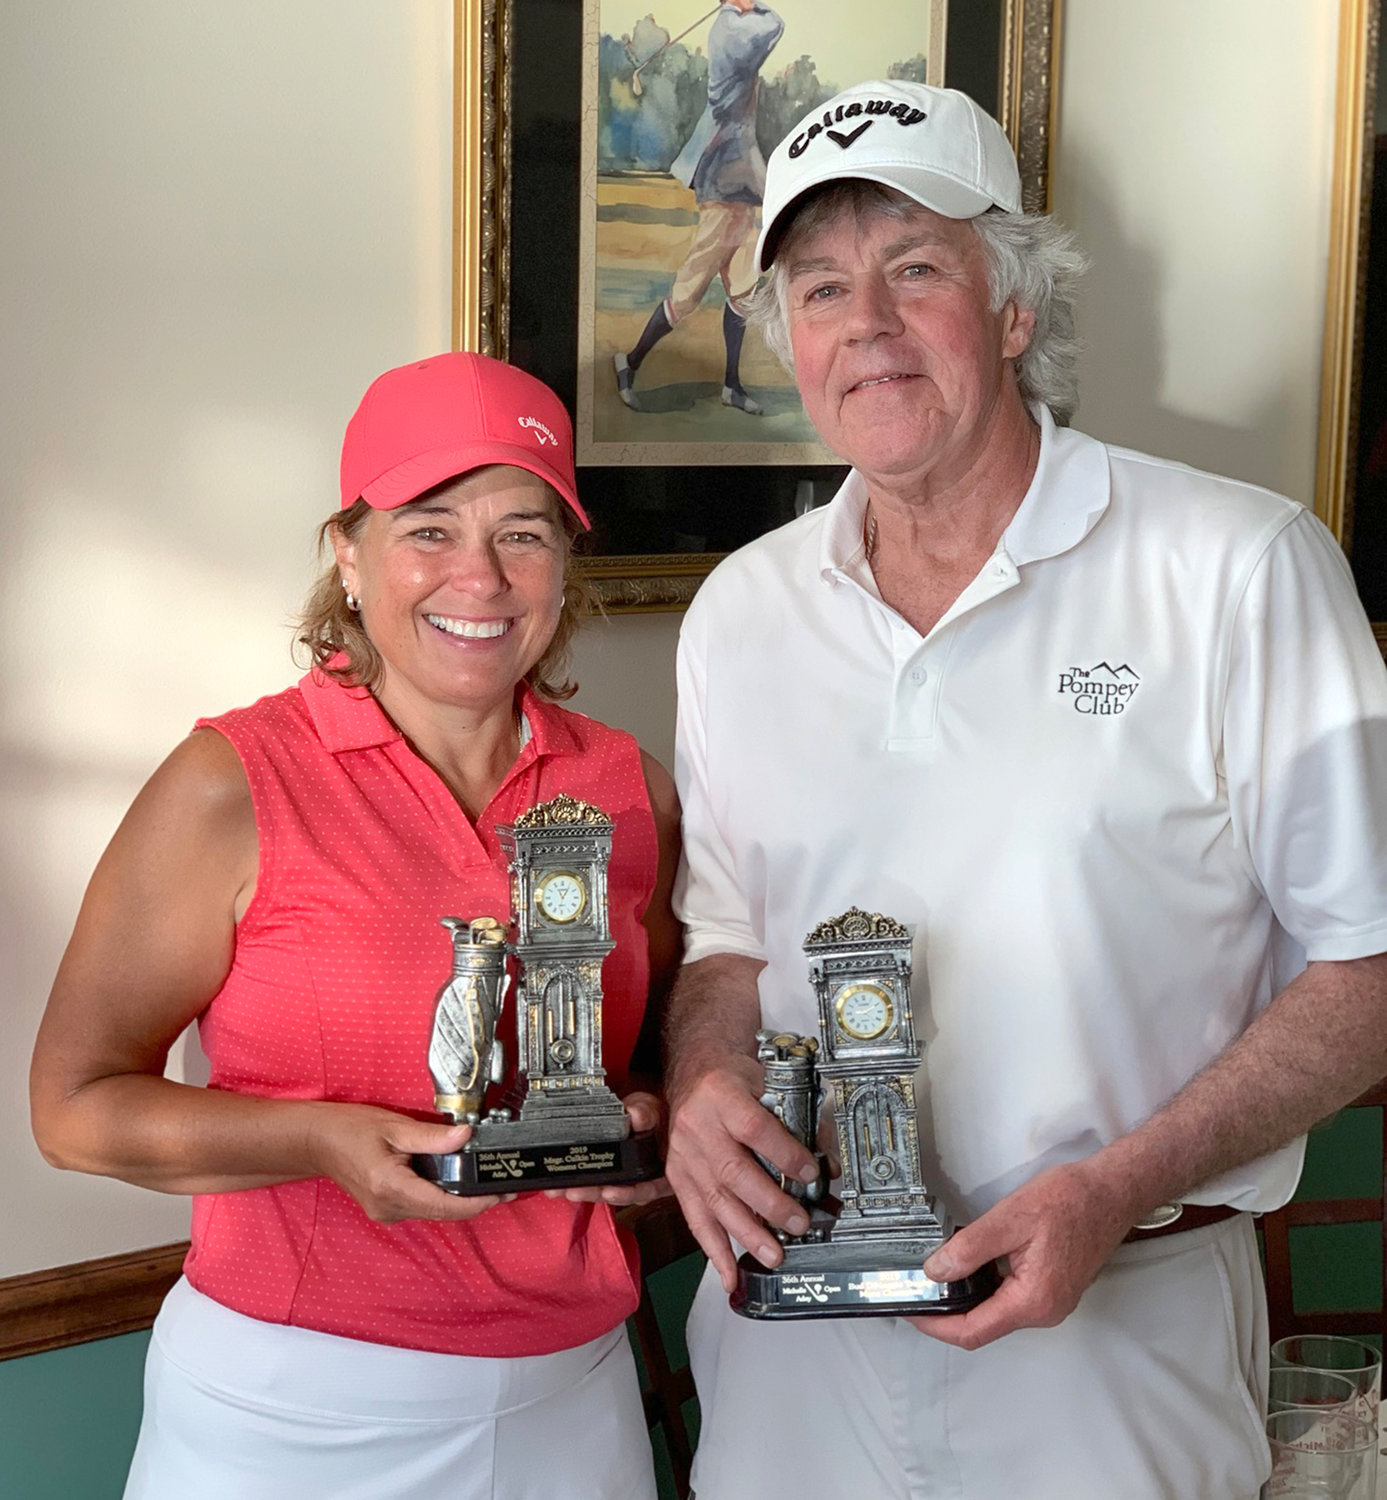 MICHELLE ADEY OPEN CHAMPS — The 36th annual Michelle Adey Open was held July 15 at Teugega Country Club. Pictured are women's and men's division champions Deb DiMaggio and Tim Rees. The event is the largest fundraiser for The Michelle M. Adey Memorial Fund, which was started in memory of Michelle Adey, who died in 1982 at the age of 6 from cystic fibrosis. The fund assists families with children suffering from life-threatening illnesses and injuries. This year's event also marked a milestone, as with the funds raised from the golf event the Michelle Adey Fund surpassed $1 million in total donations to the fund over the 37 years of the fund's existence.